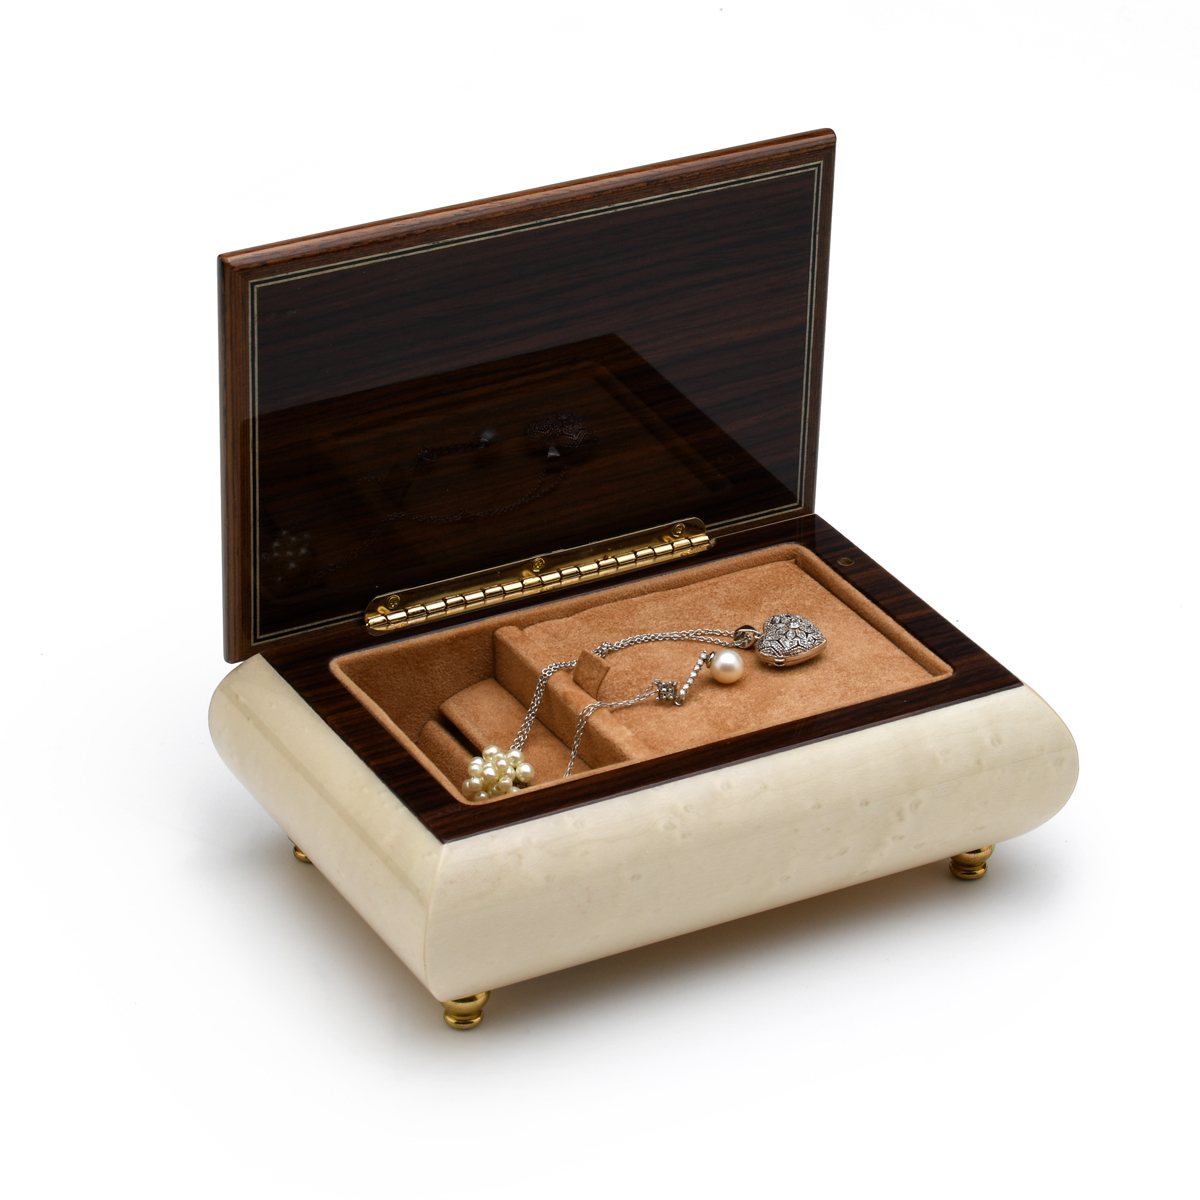 Incredible 18 Note Handcrafted Ivory Music Box with Bird and Flower Inlay